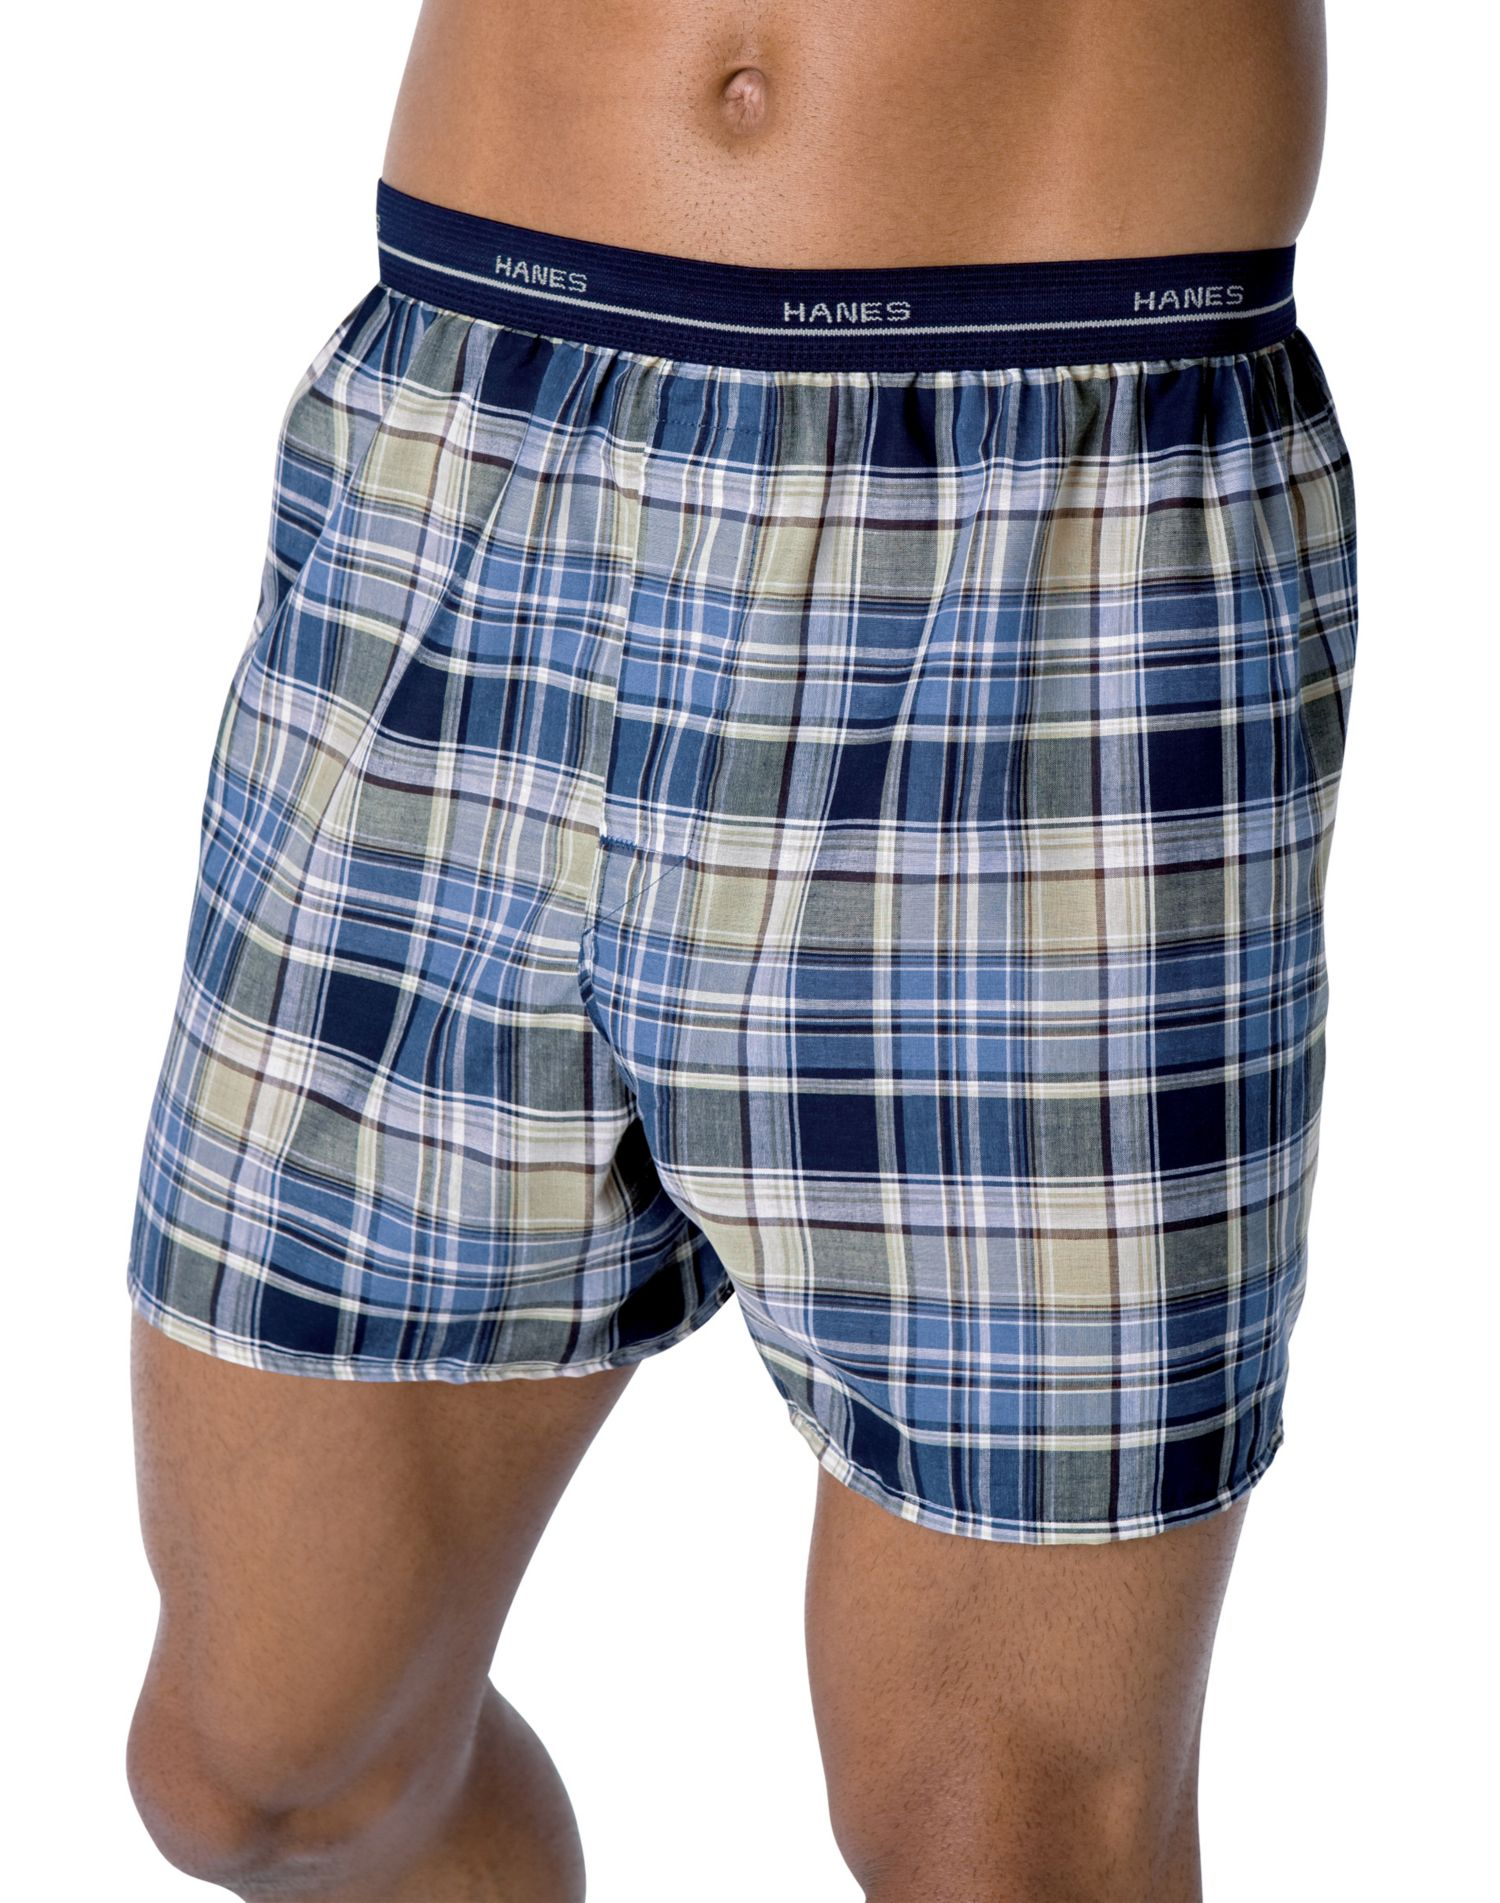 Hanes MWCST - Men's Plaid Woven Boxers with Comfort Flex® Waistband 3-